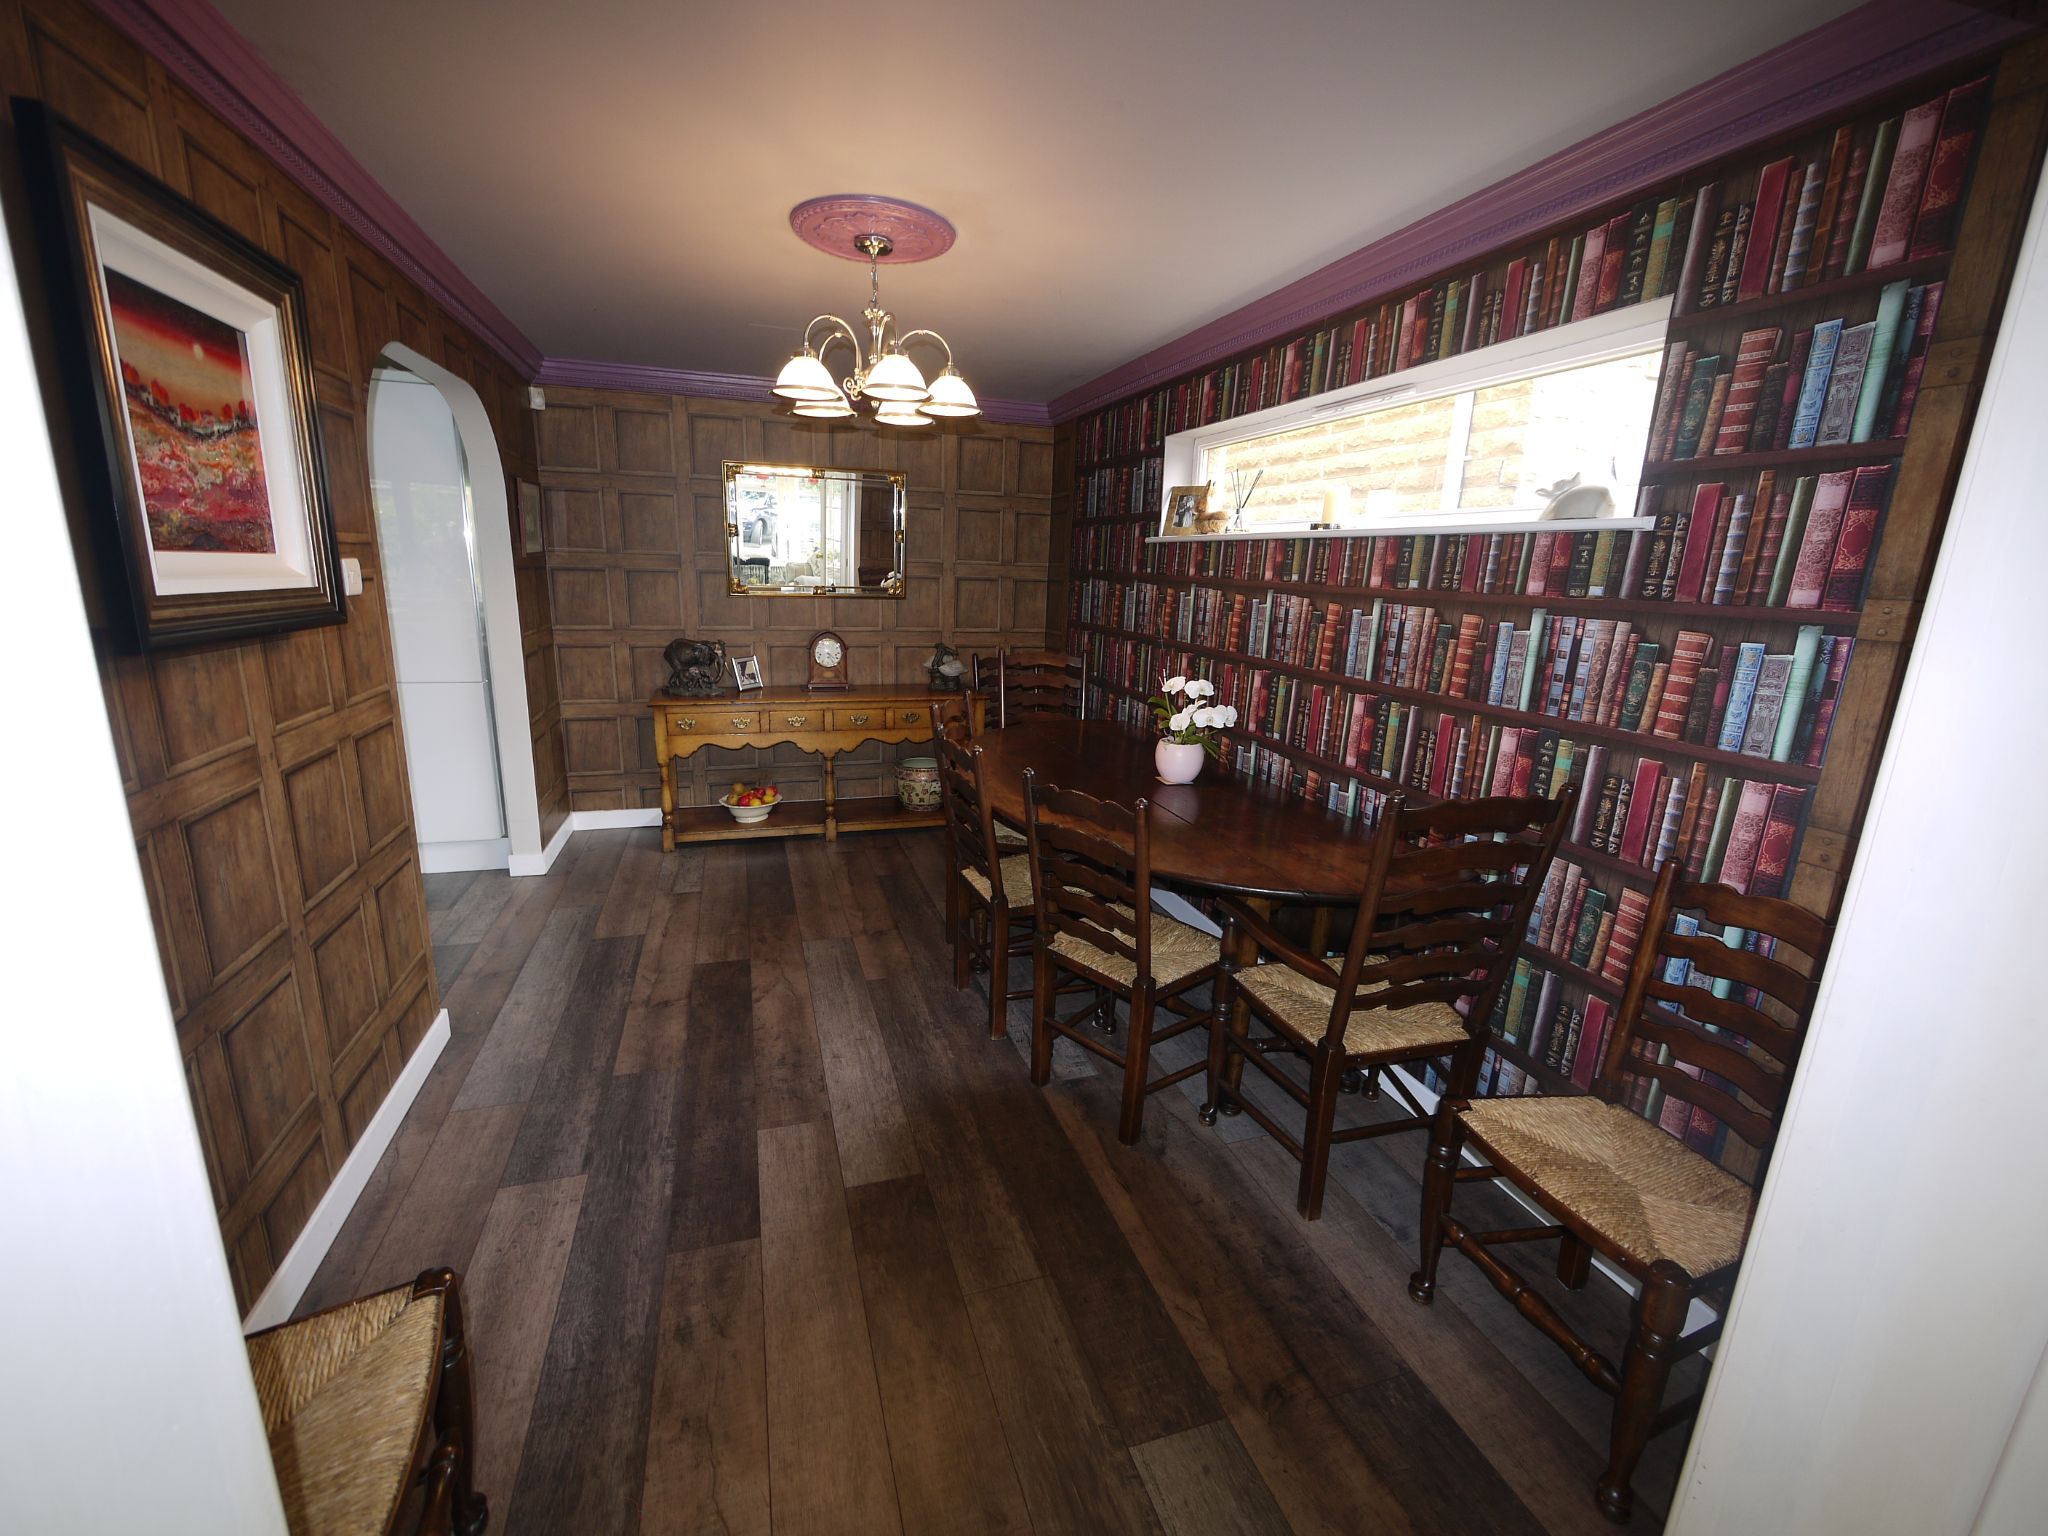 4 bedroom detached house For Sale in Brighouse - Dining Room.